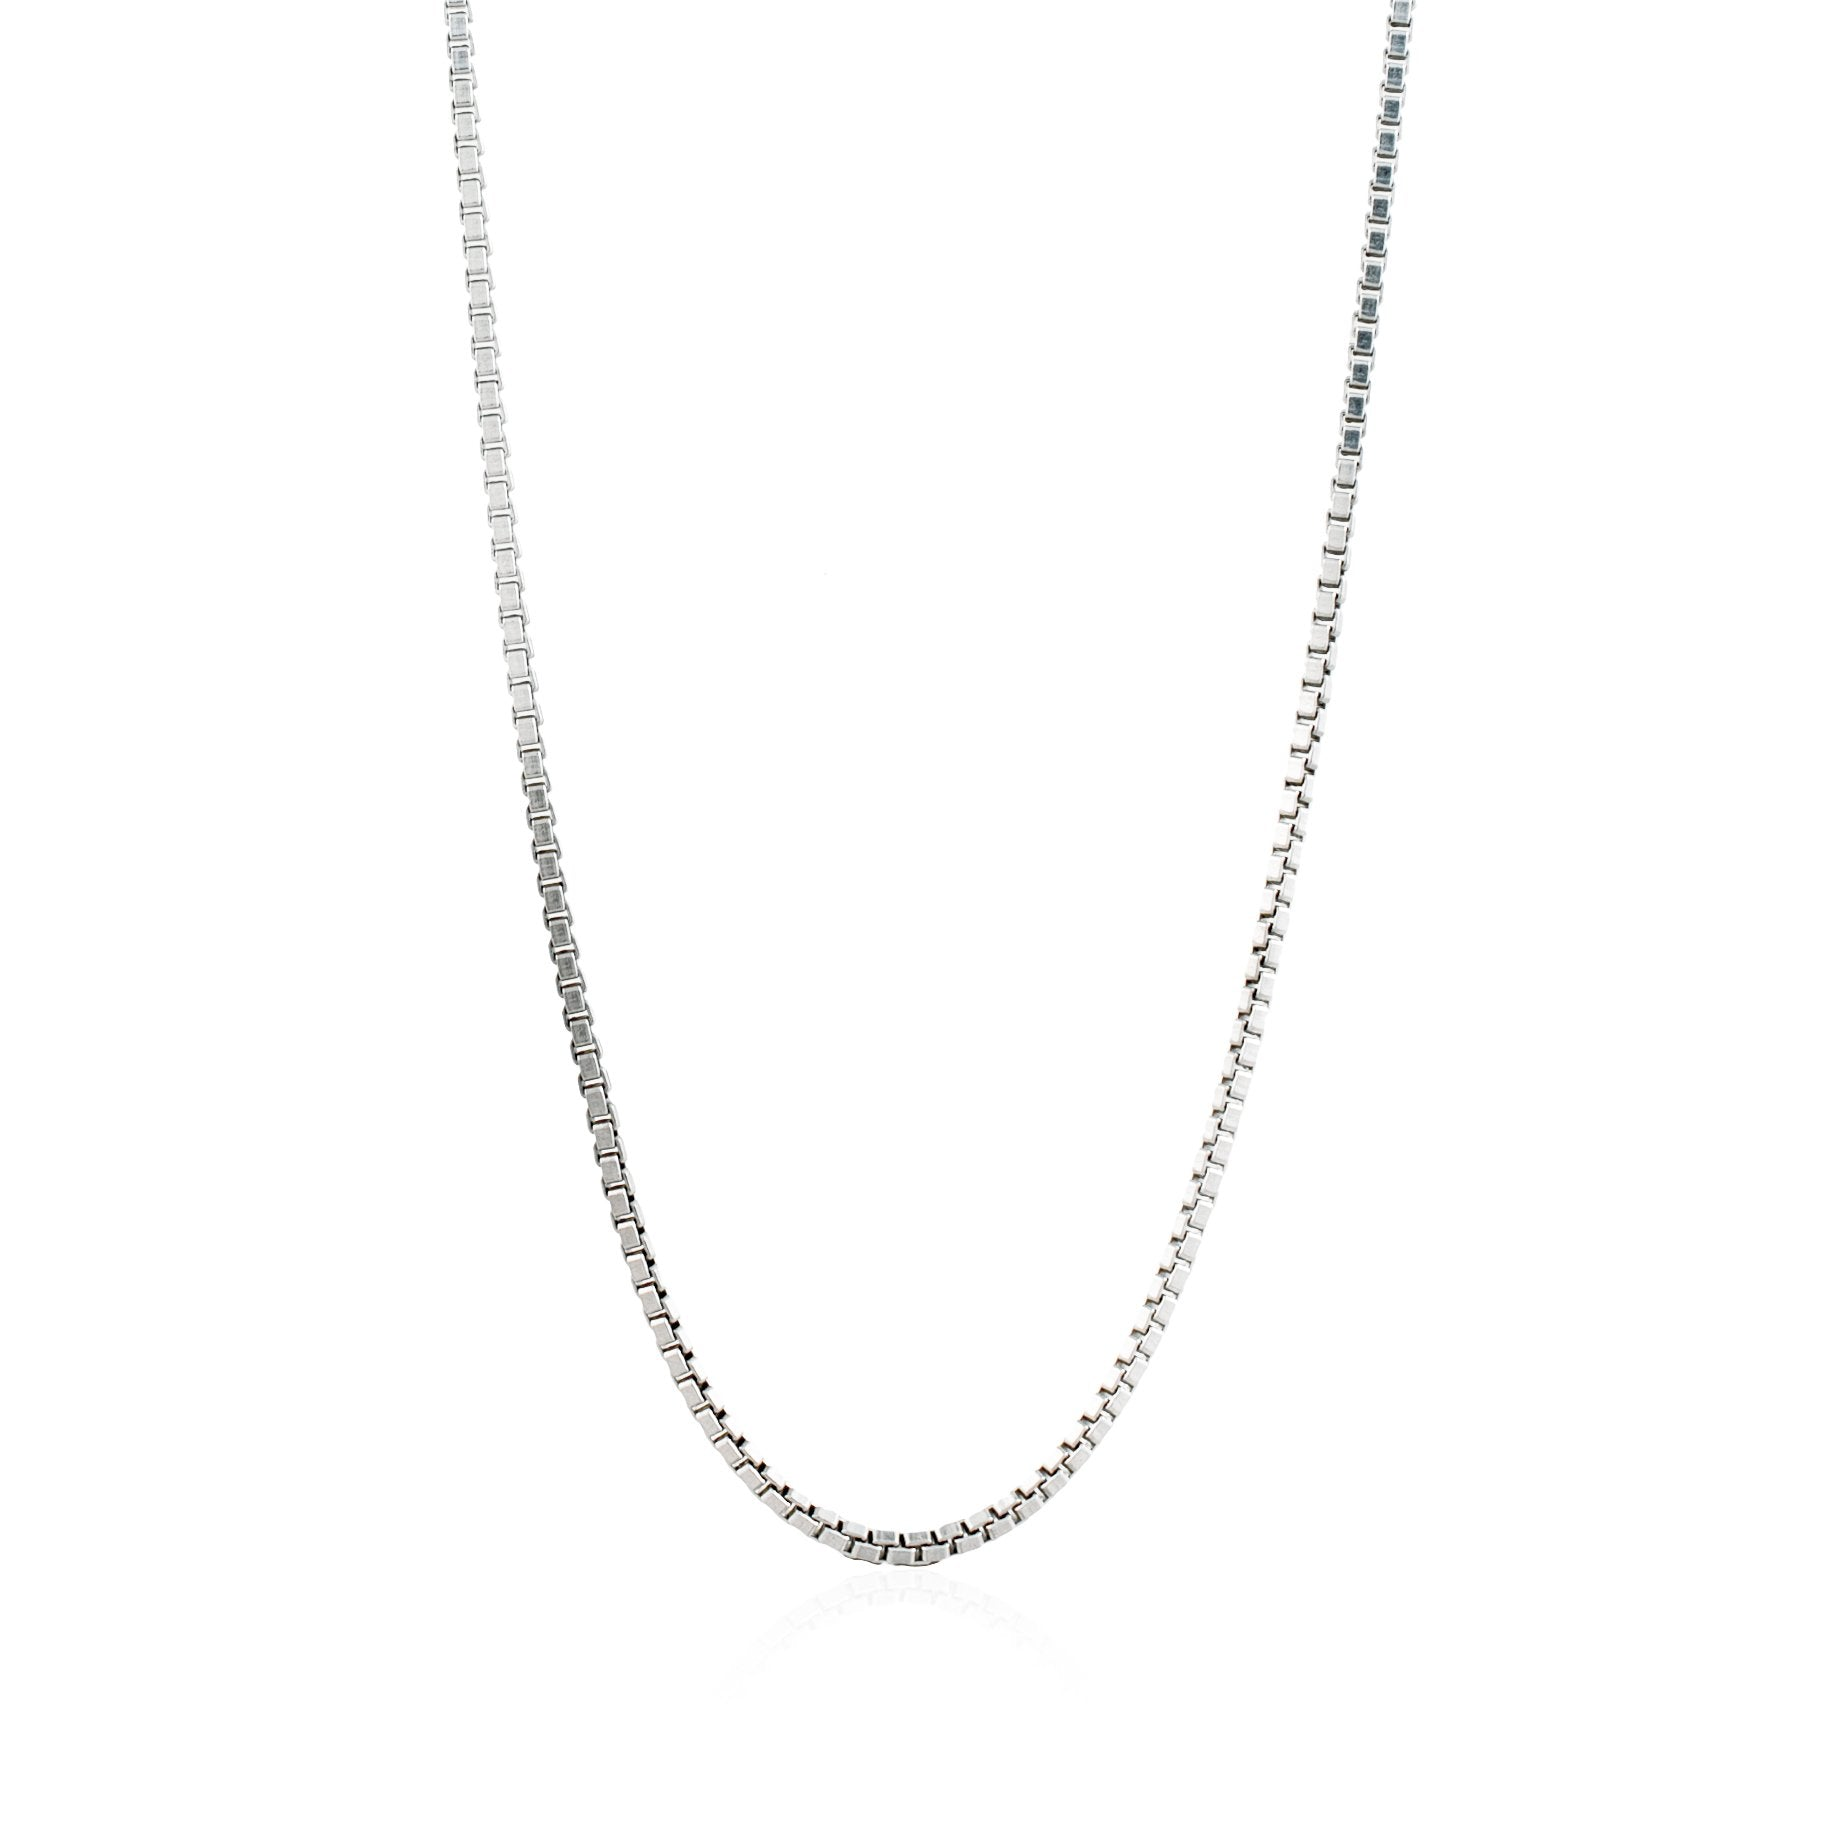 Luna & Rose Bahama Box Chain Necklace - Recycled Sterling Silver